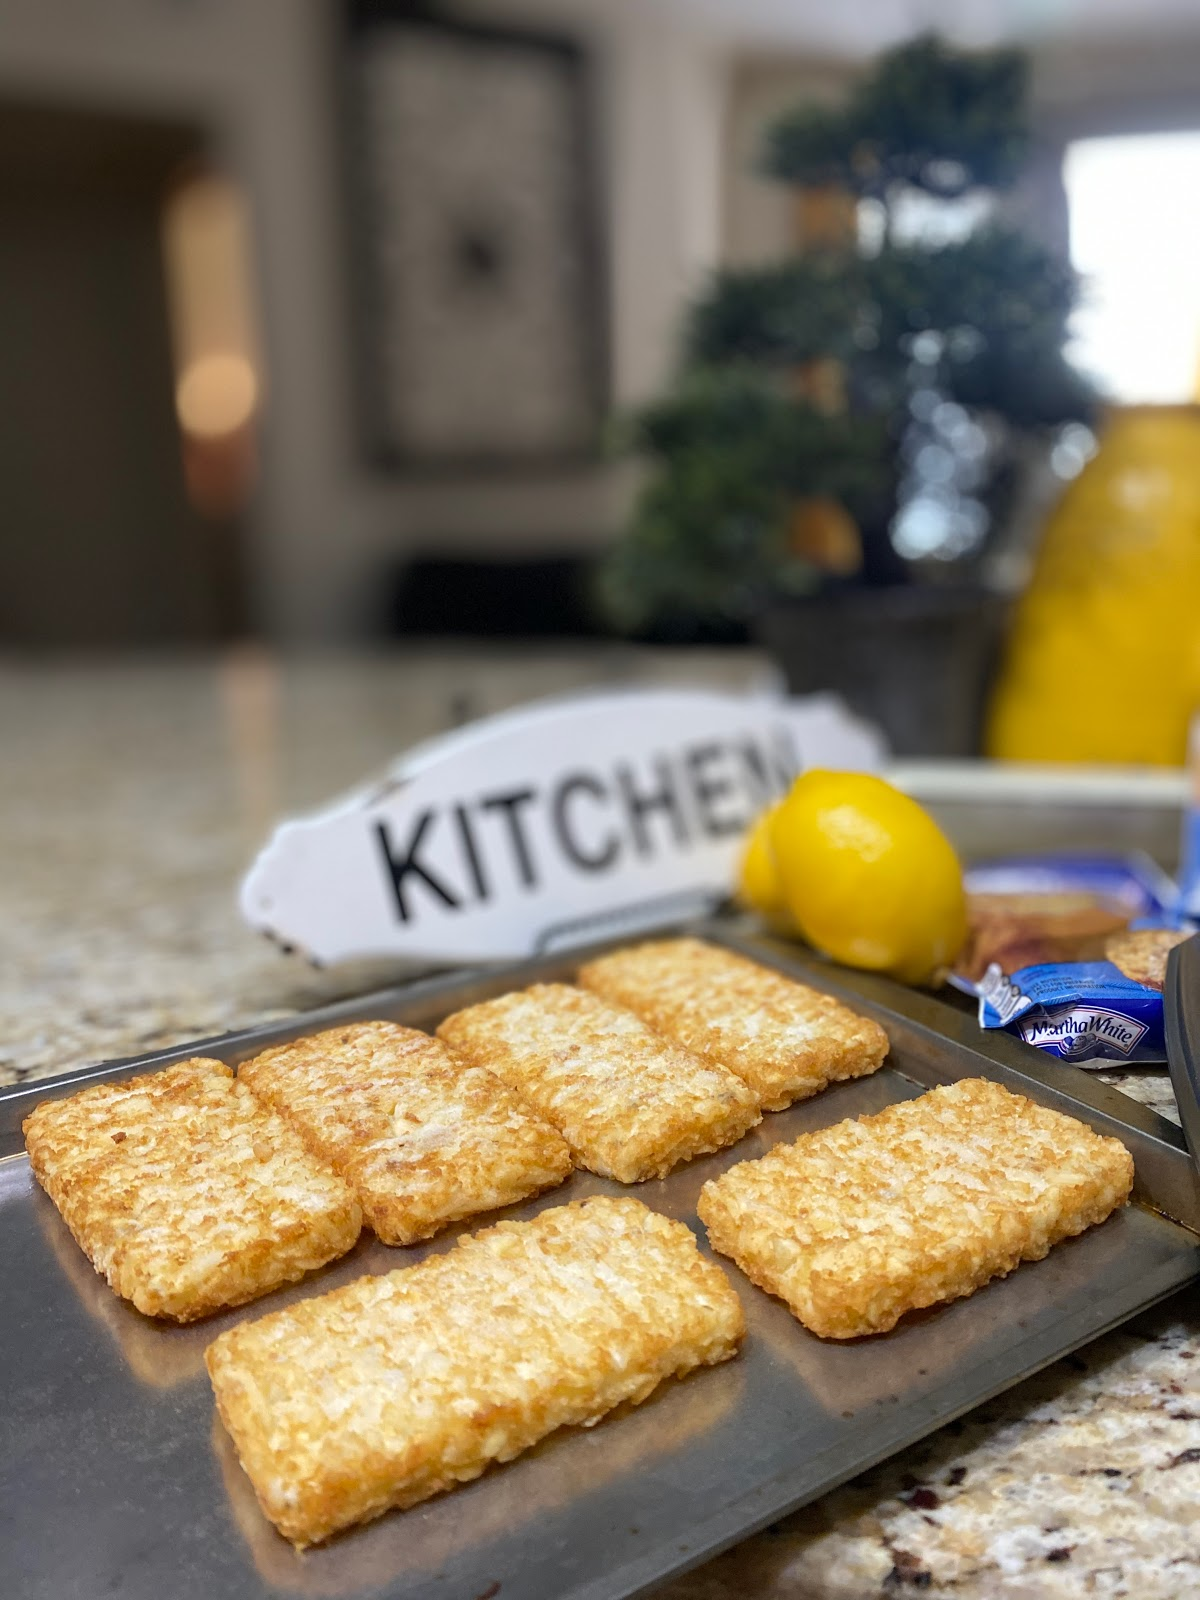 Cooking hash browns in kitchen:  Toot -Toot: If I Must Be In The Kitchen!